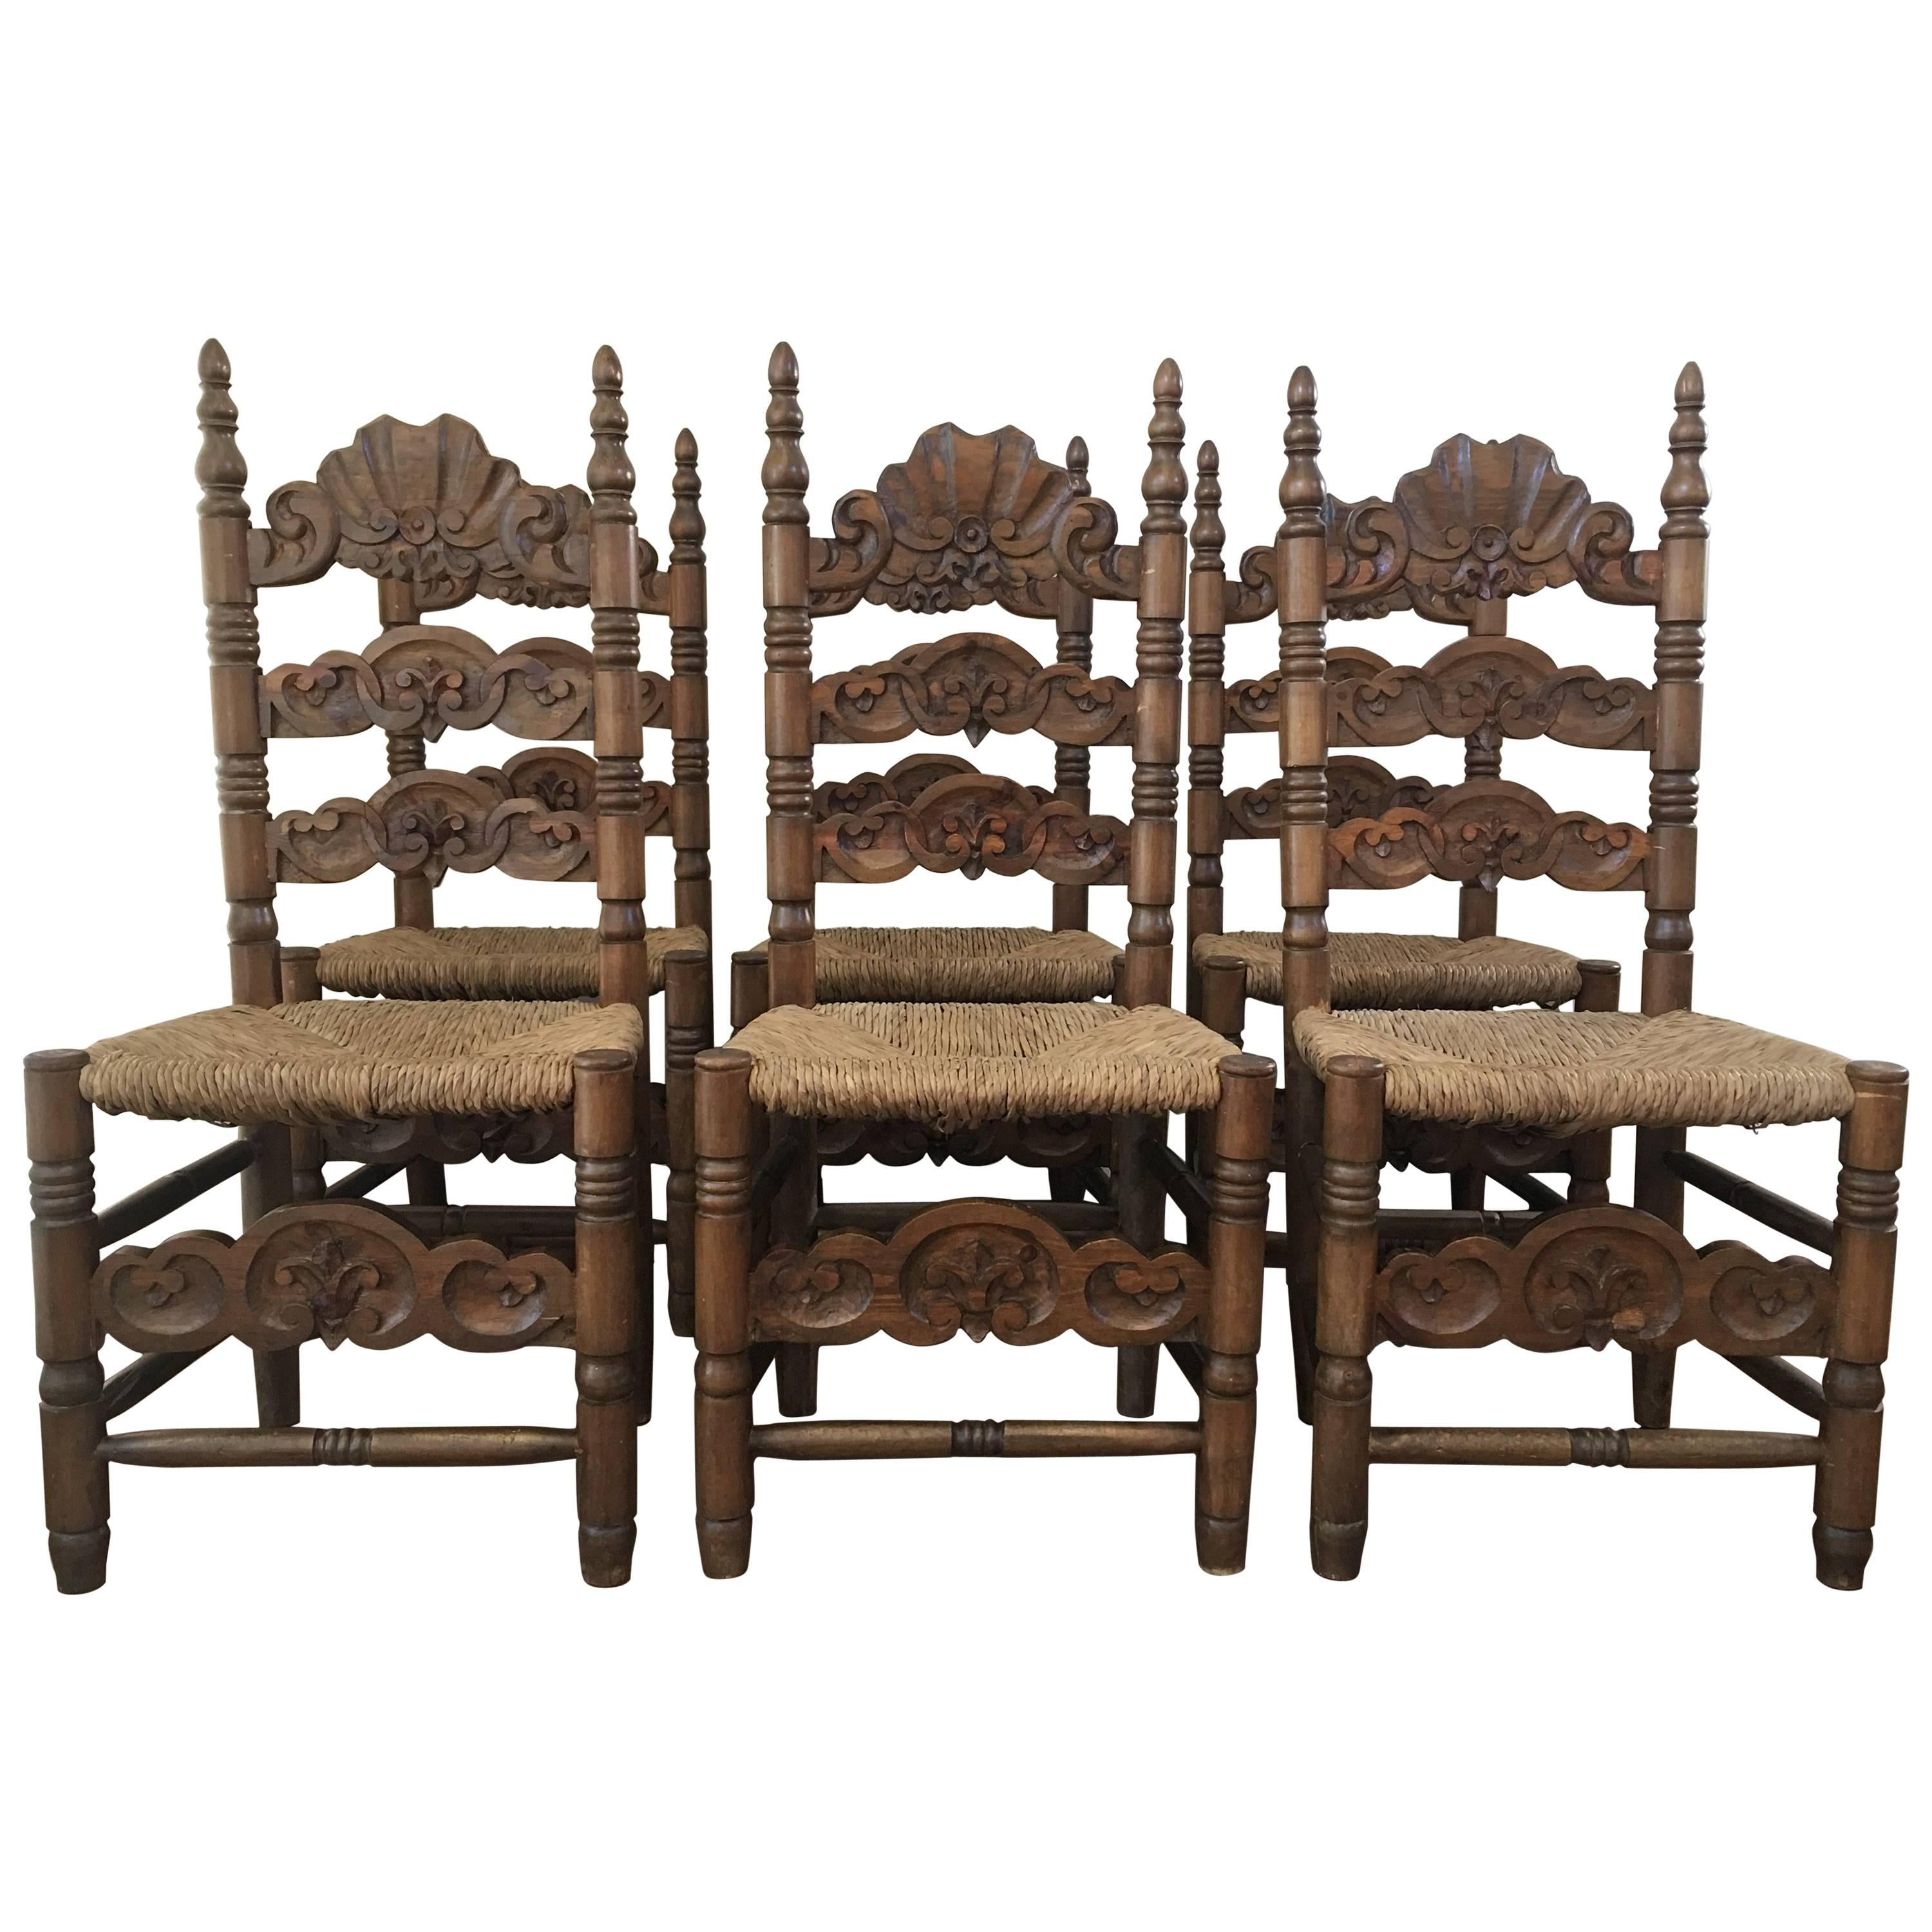 Set Of Six Chairs, Turned And Carved Wood, With Straw Seat Of The 20th